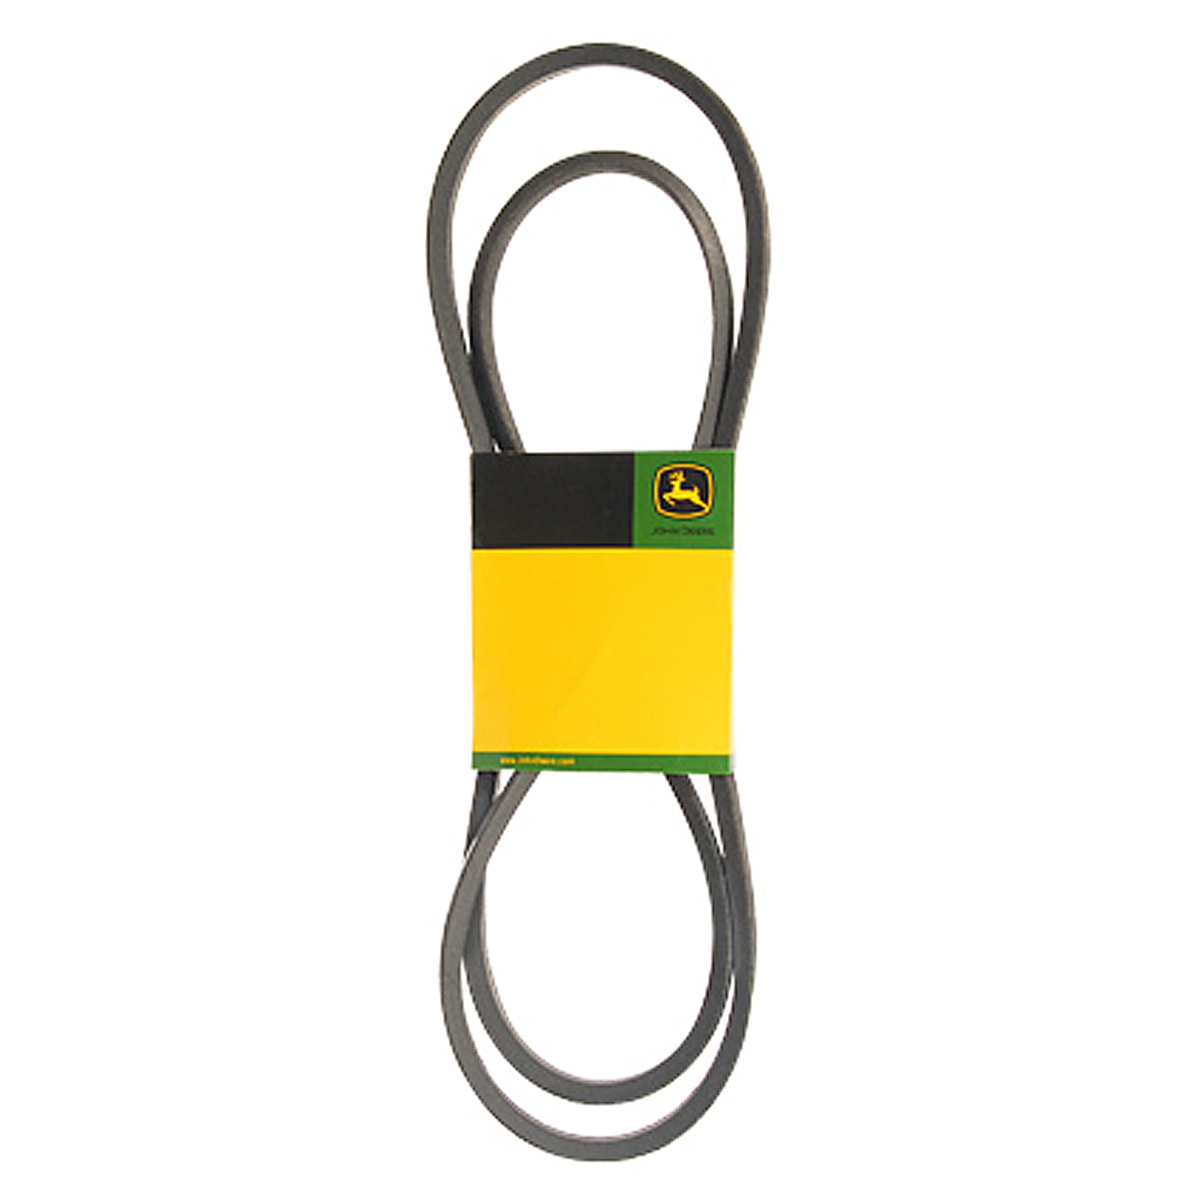 Traction Drive Belt for D105 and E100 on jd tractor seats, jd tractor paint, jd tractor parts, jd tractor filters, jd tractor speakers, jd tractor engines,